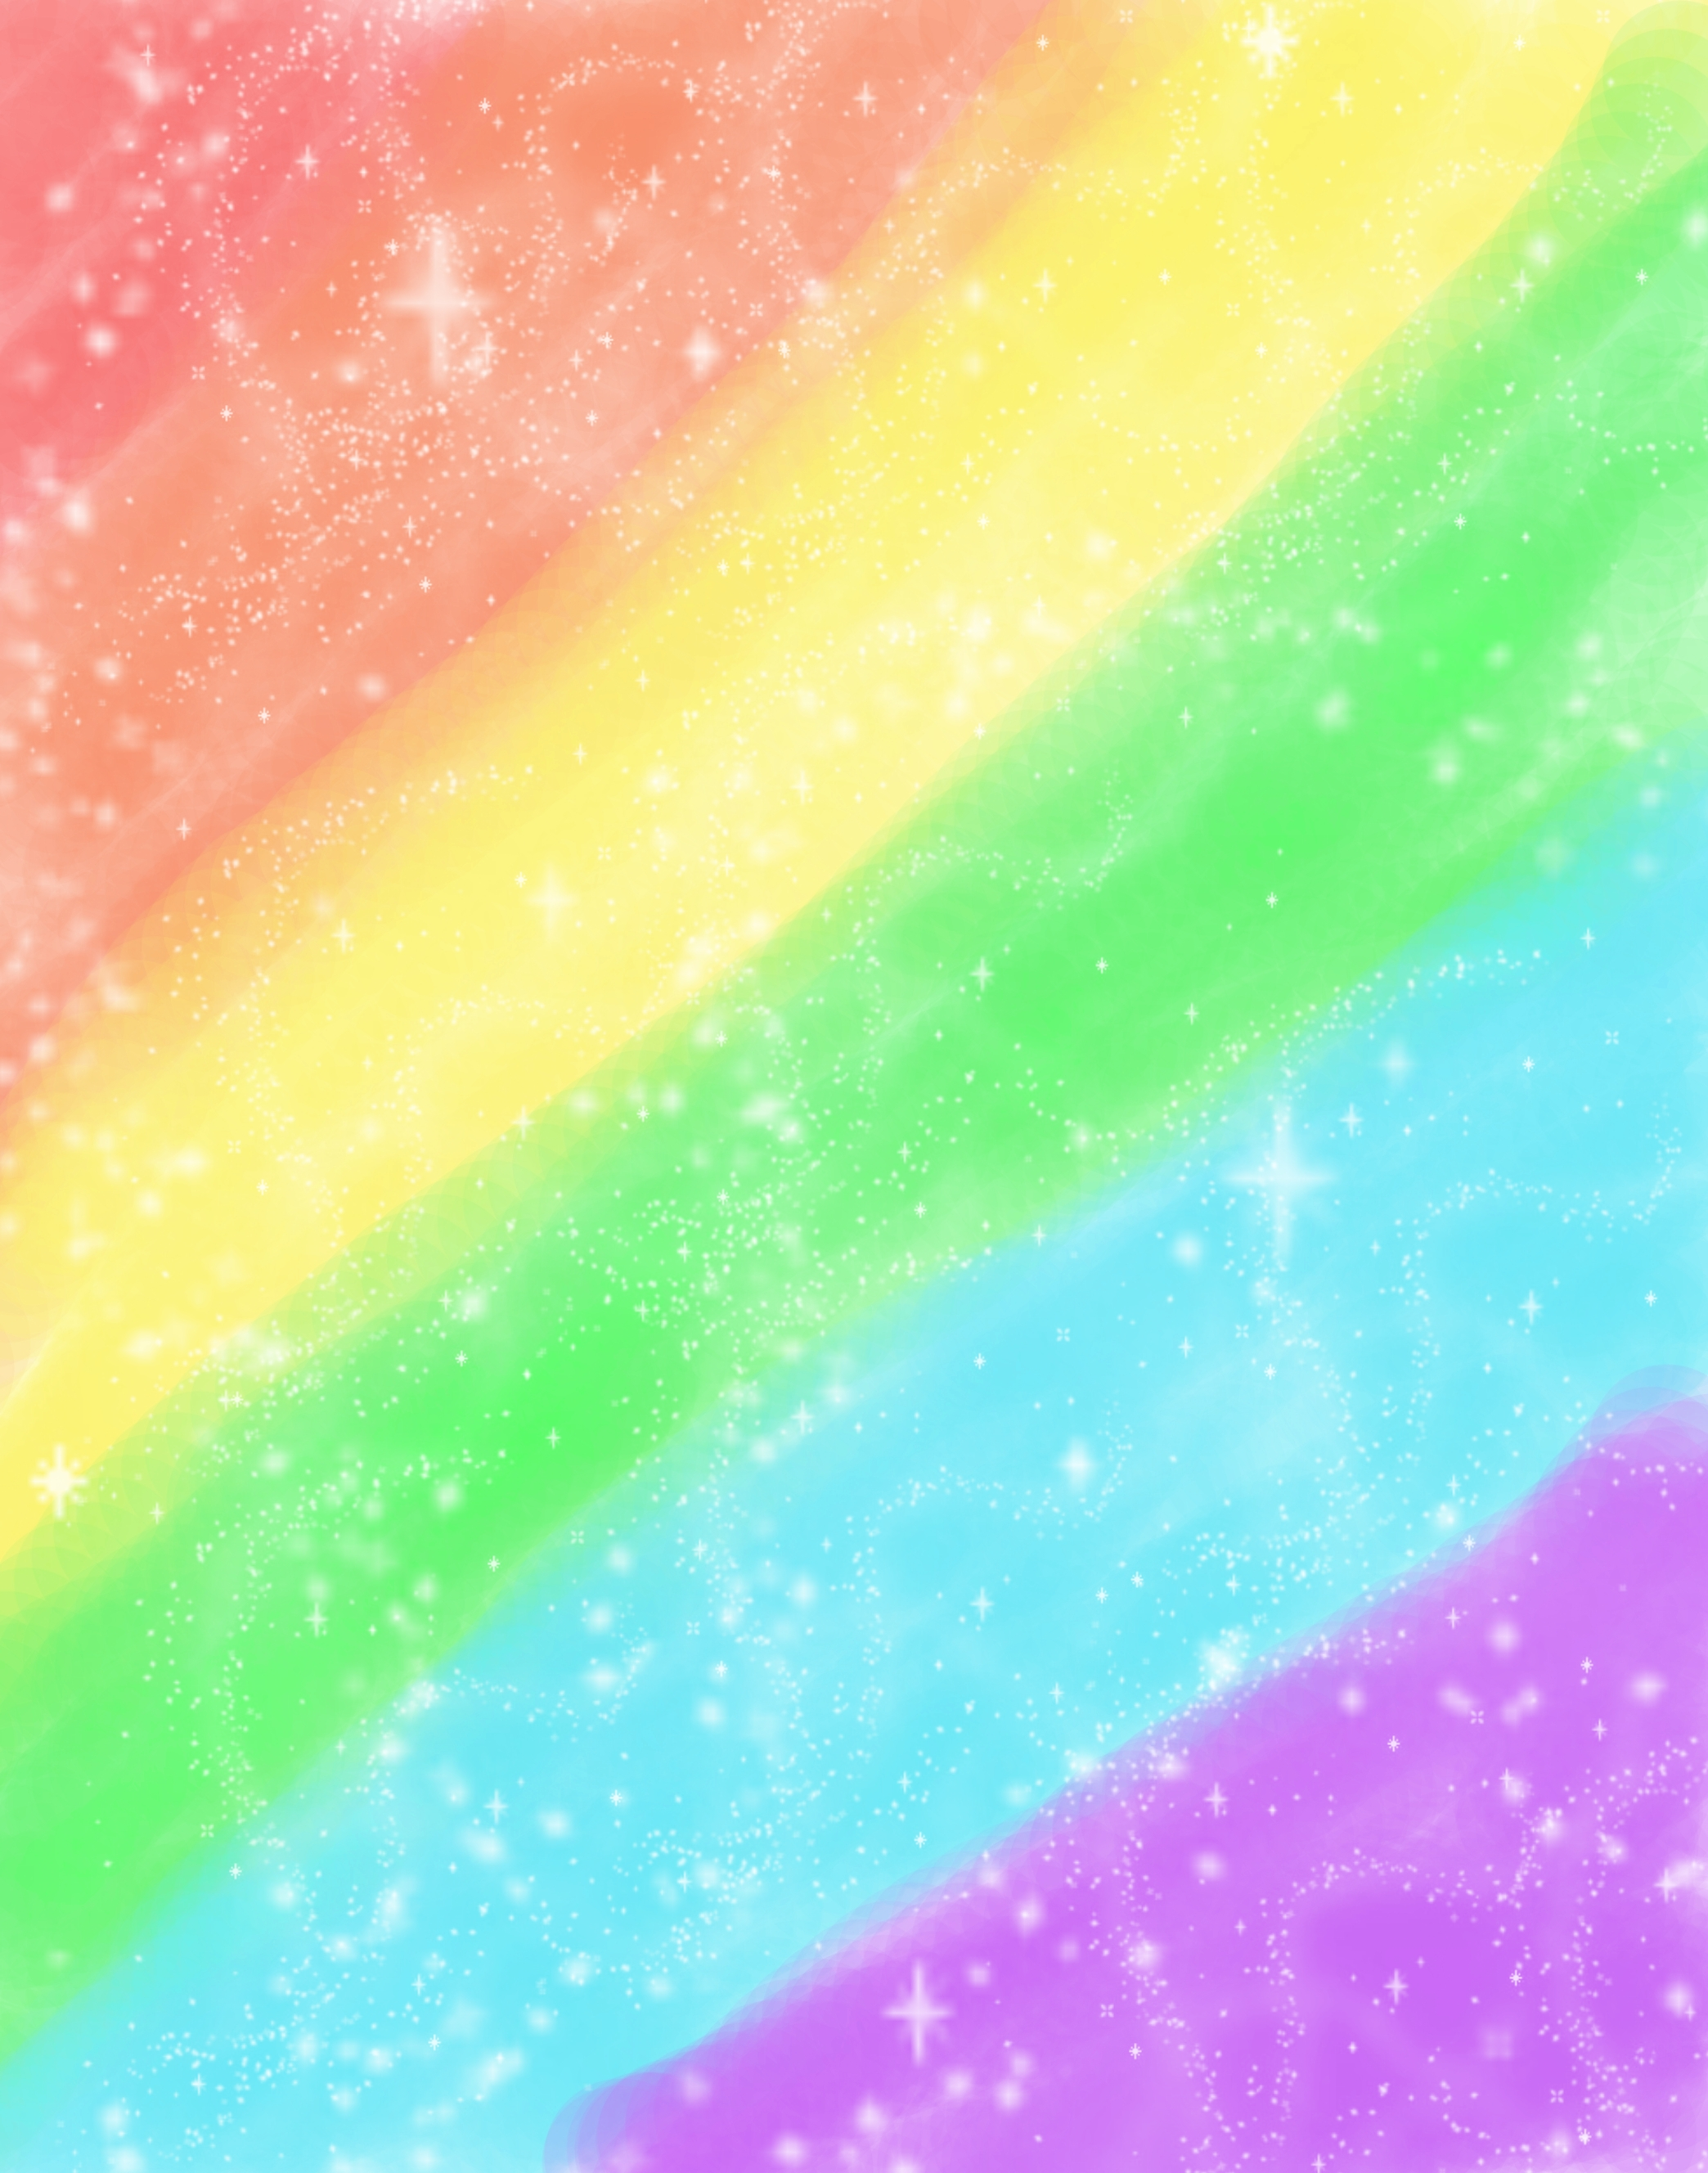 Backgrounds Glitter Backgrounds for Computer 2088x2656